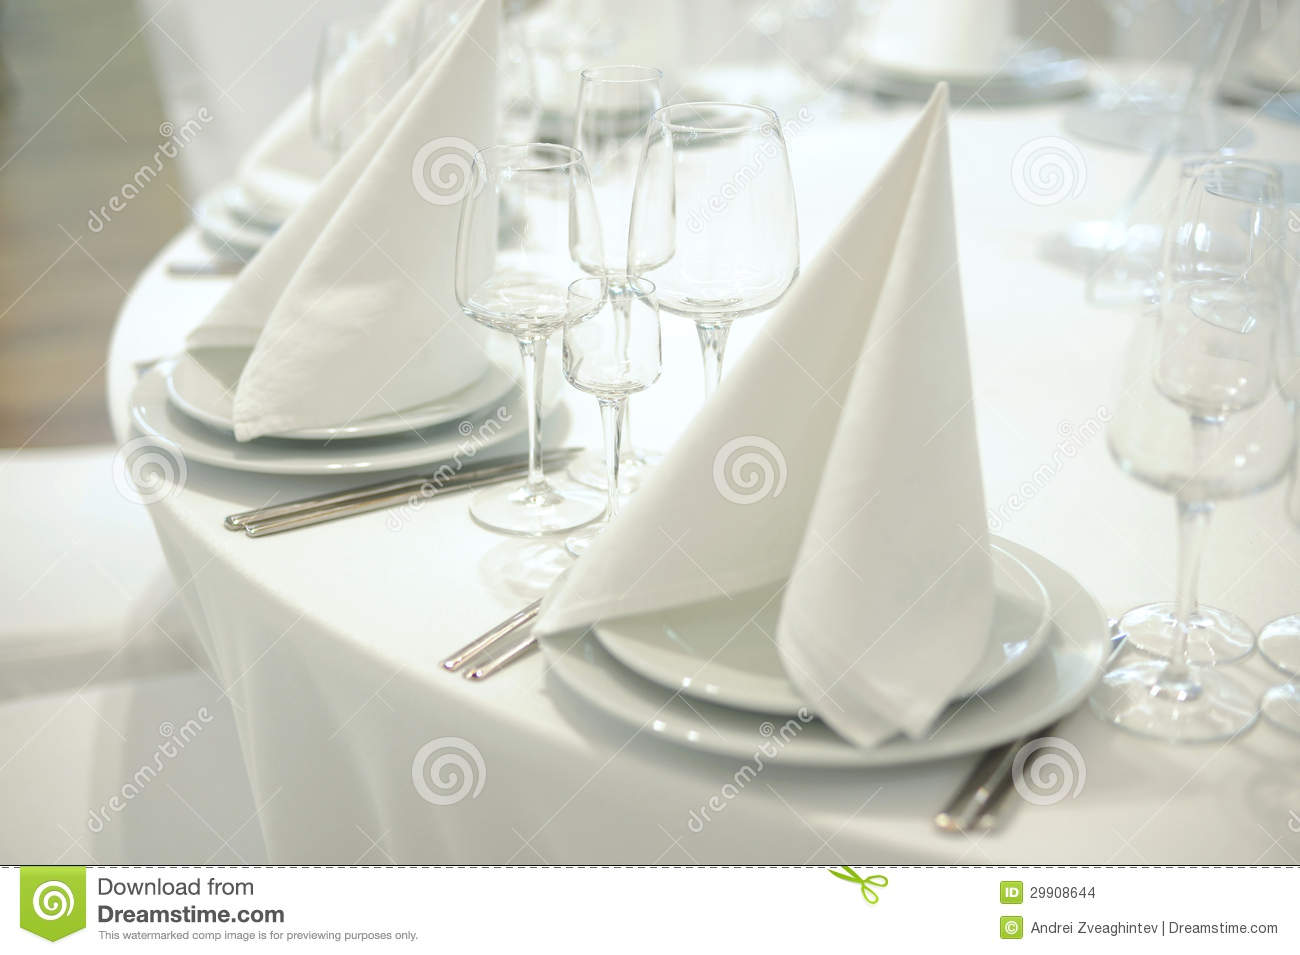 Disposition de tableau images stock image 29908644 for Disposition des verres sur la table